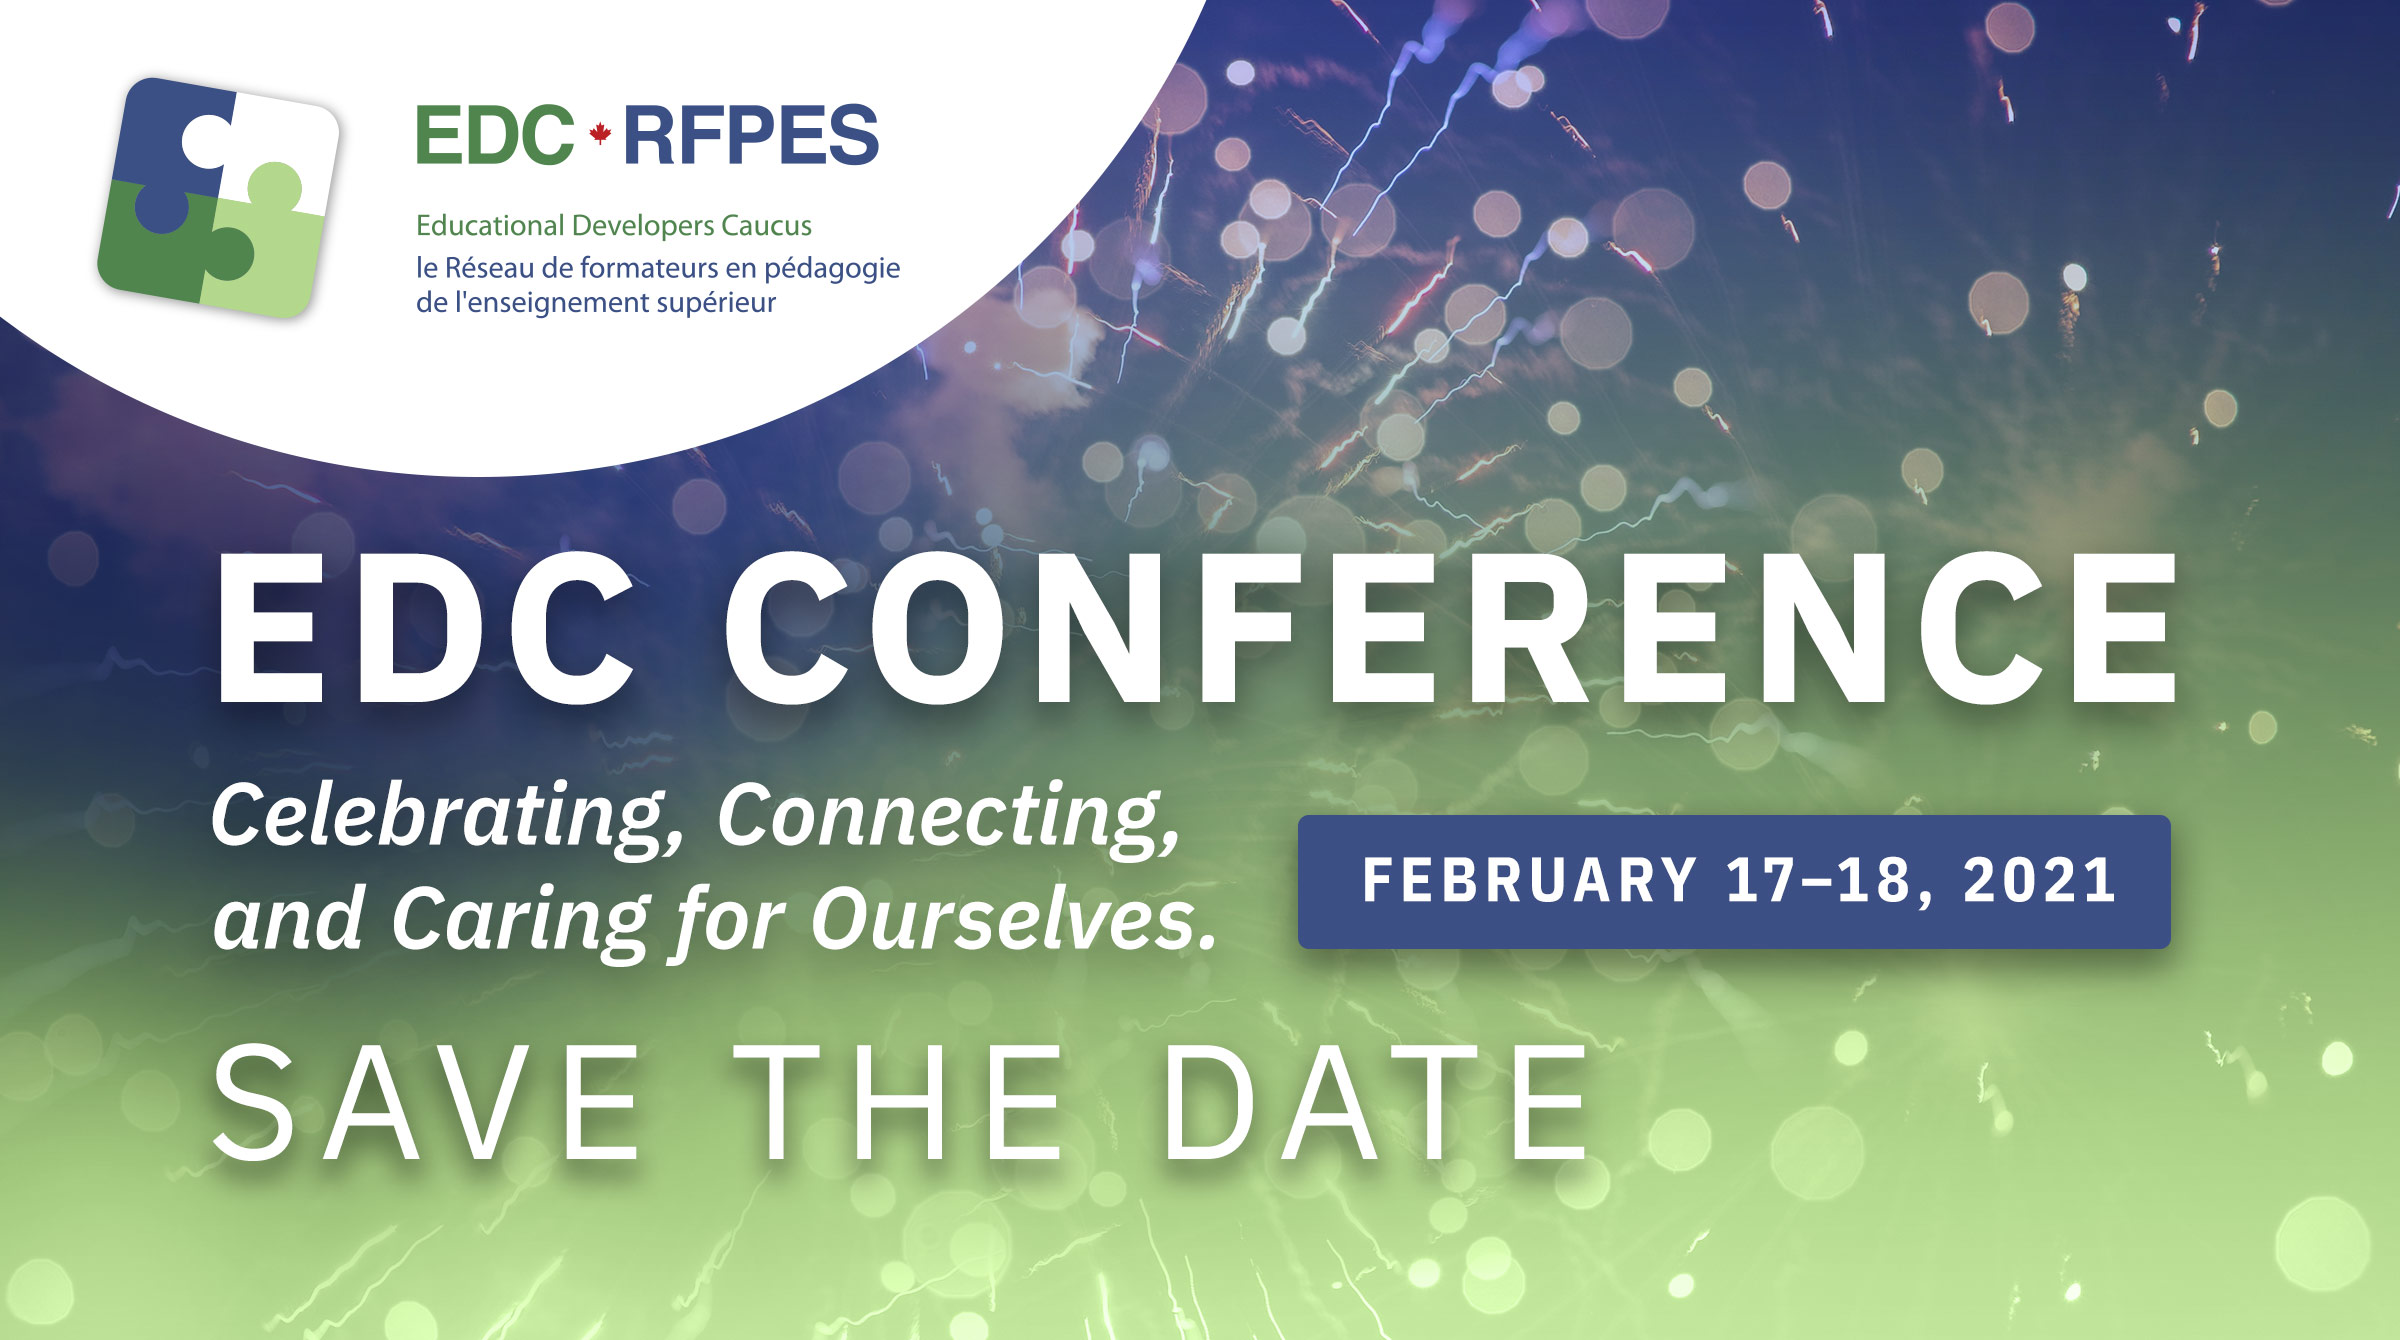 EDC Conference Celebrating, Connecting, and Caring for Ourselves. Save the date February 17-18, 2021